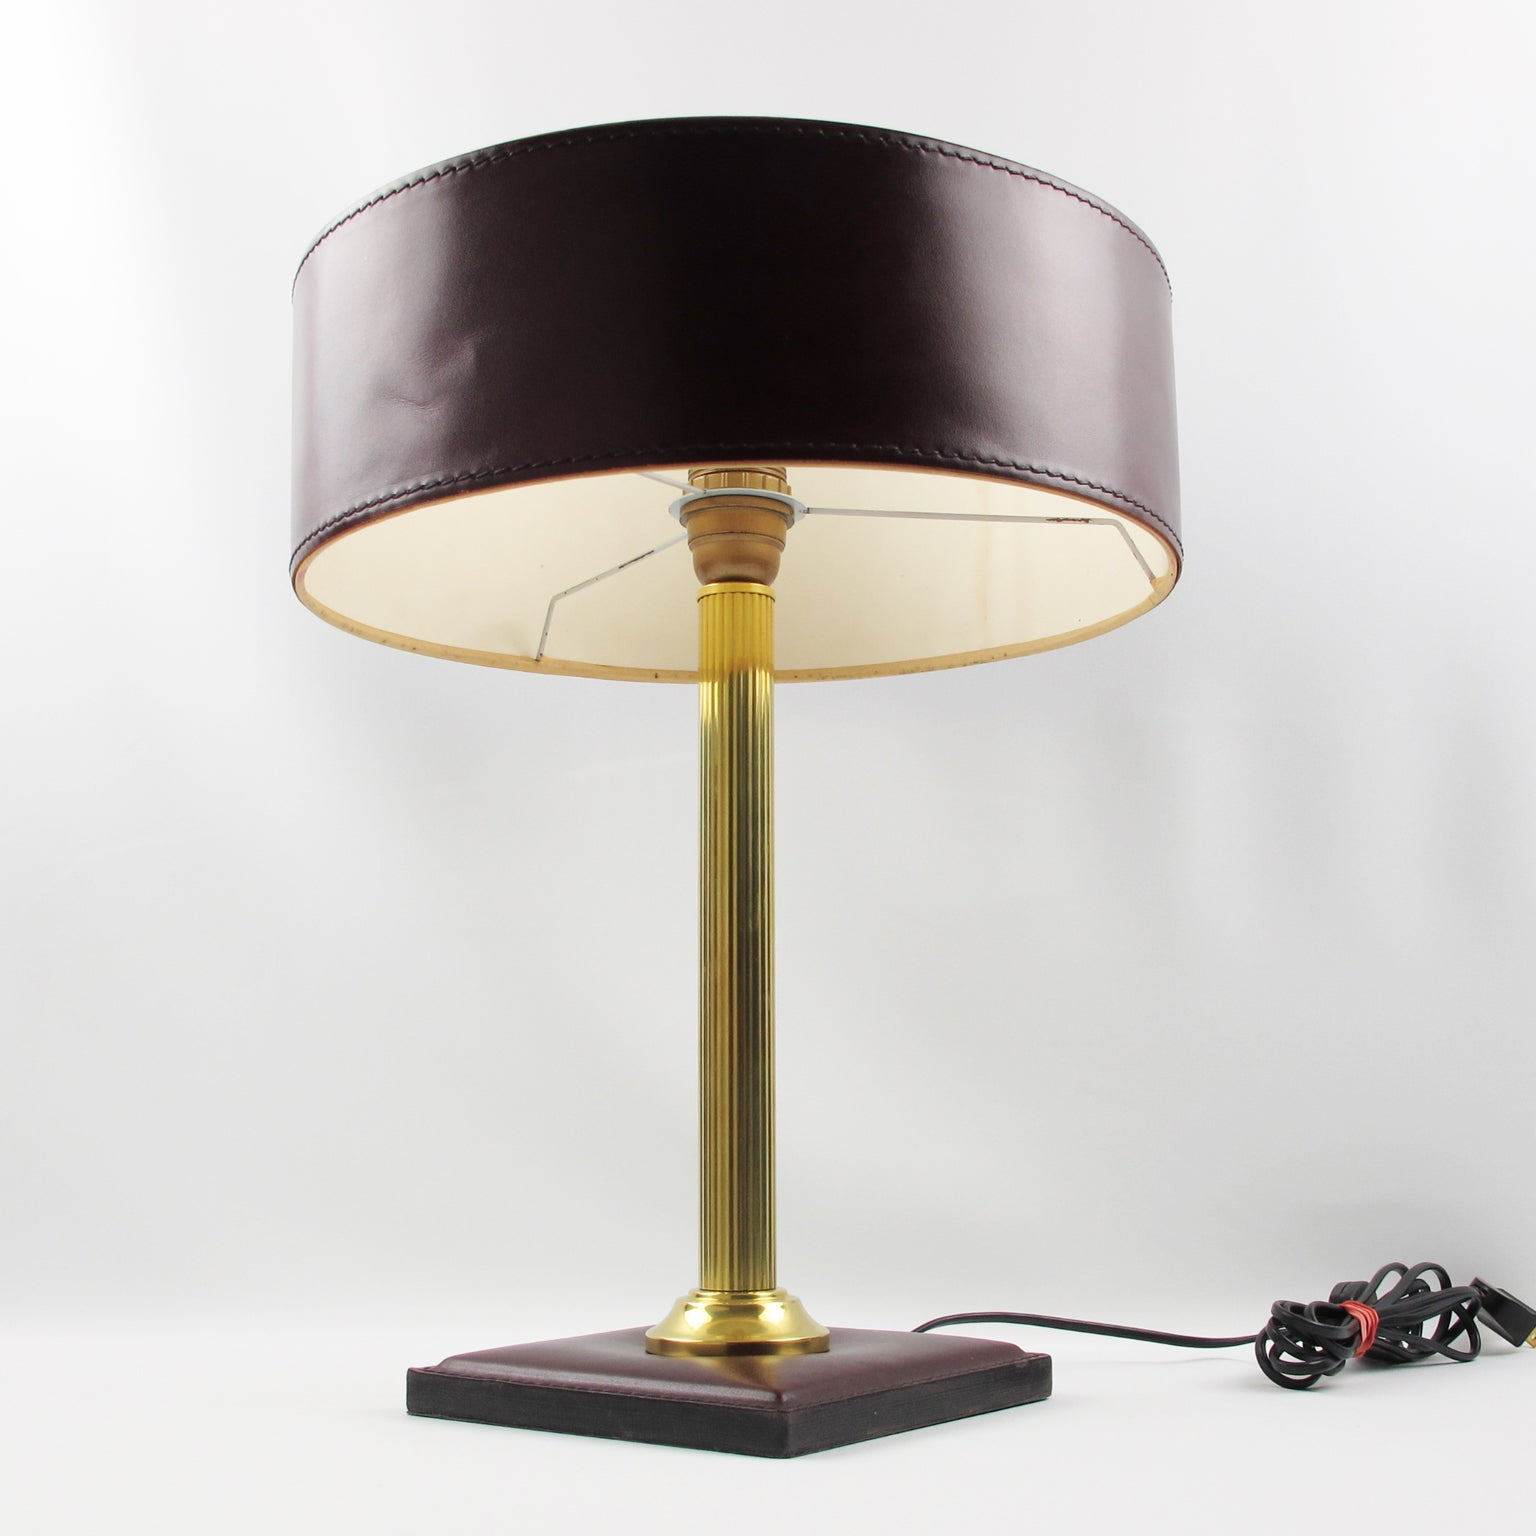 sarang painted pm photo lampshade small hand lamp jan products shades shade leather peacock